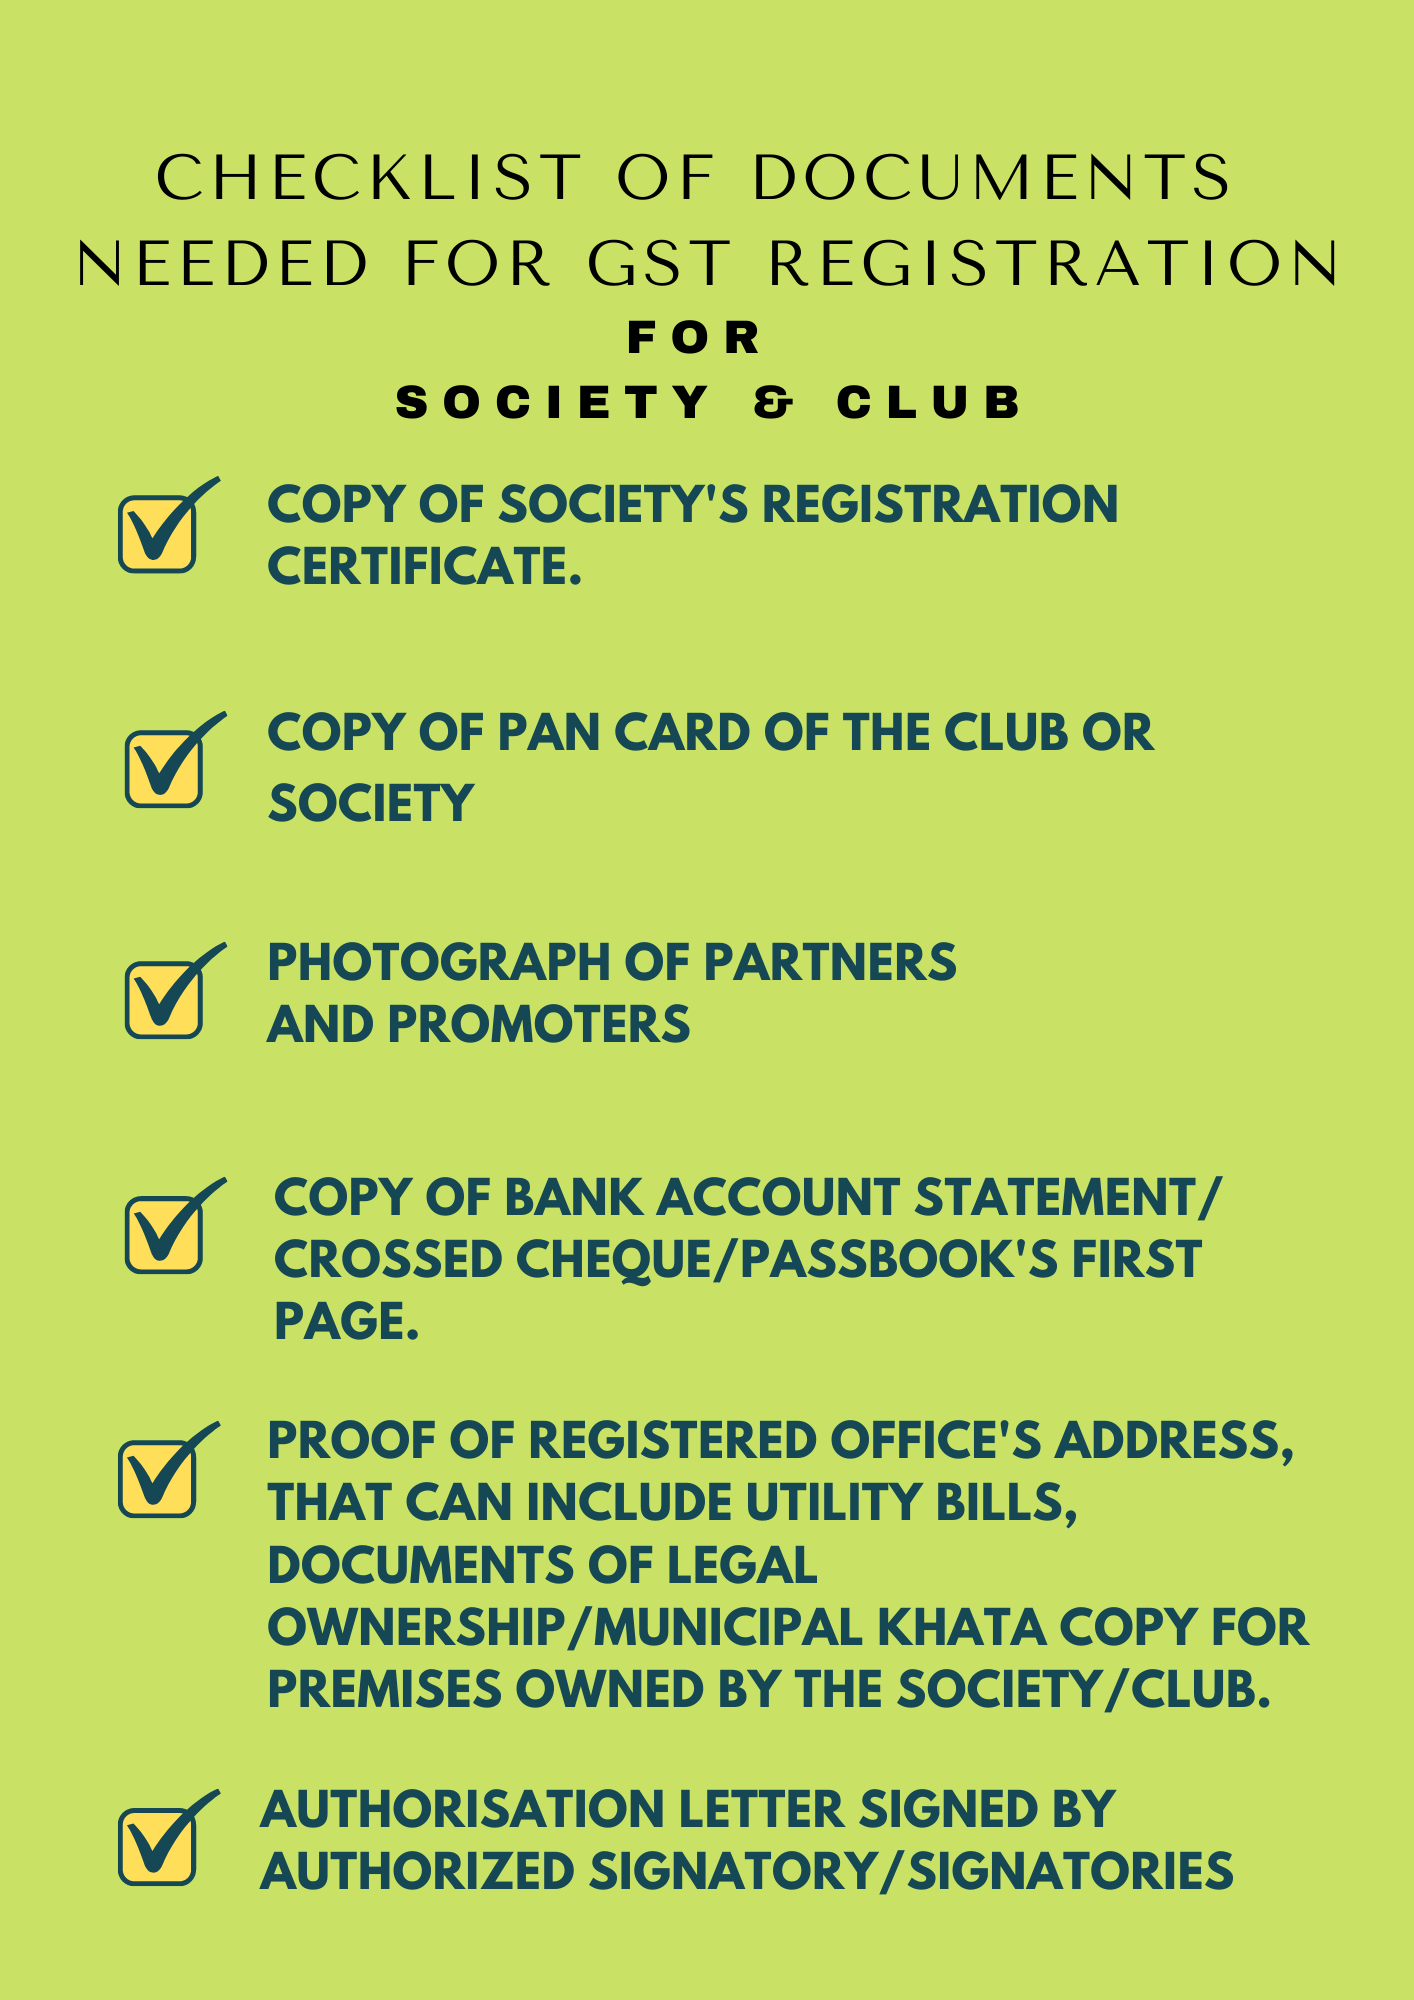 Documents needed for GST registration for Society & Club